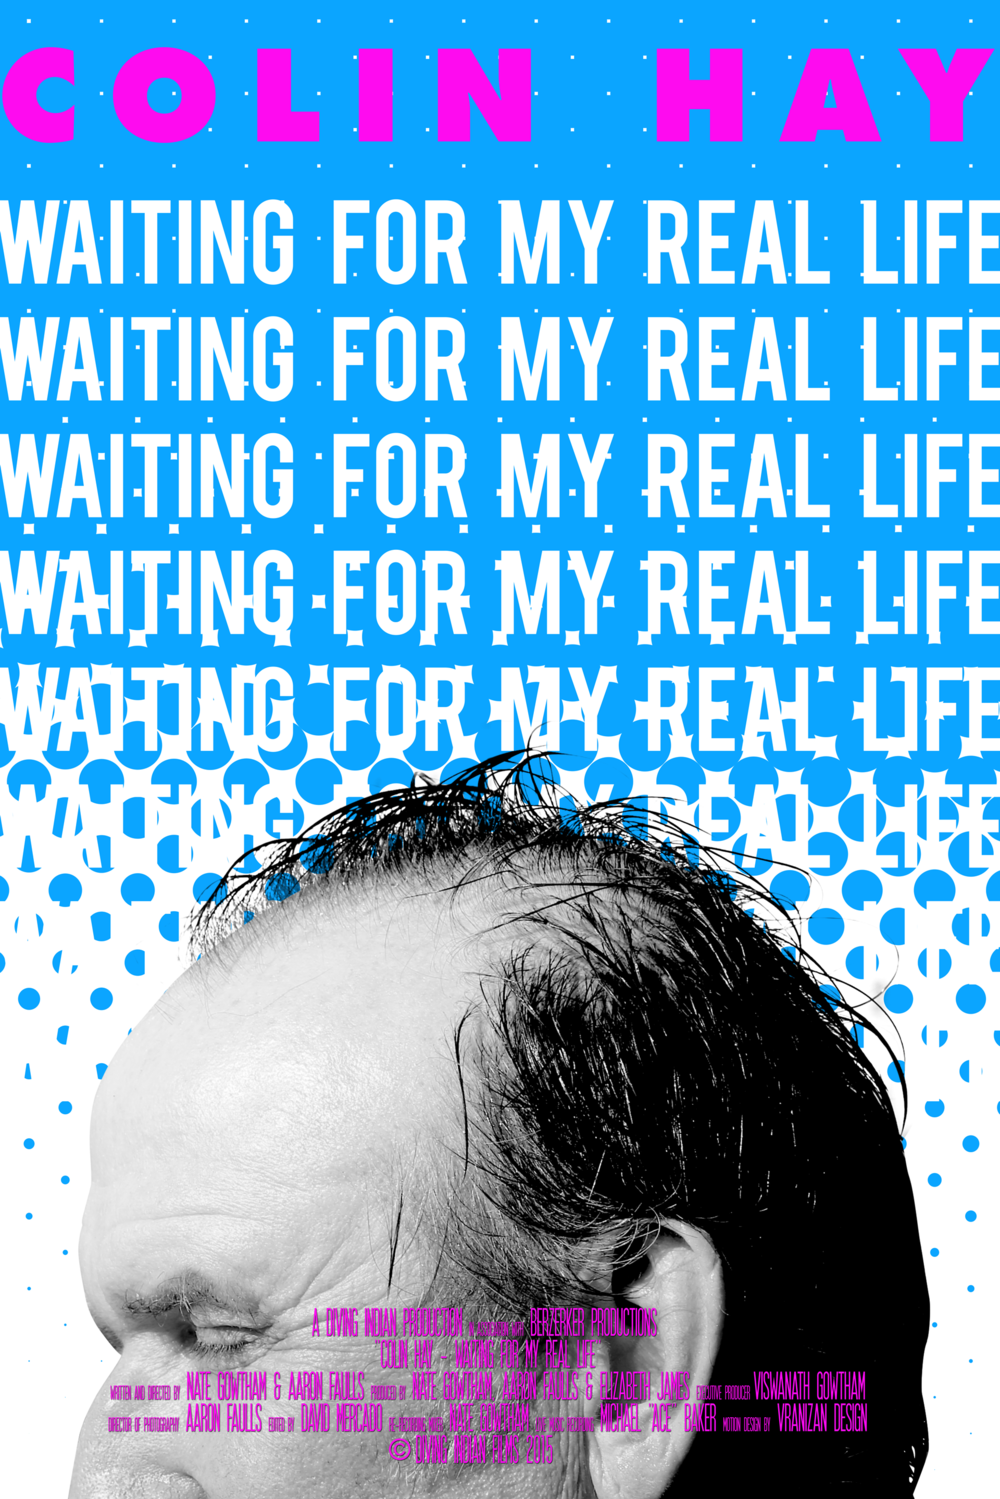 Closing Night Film & Wrap Party - COLIN HAY - WAITING FOR MY REAL LIFE